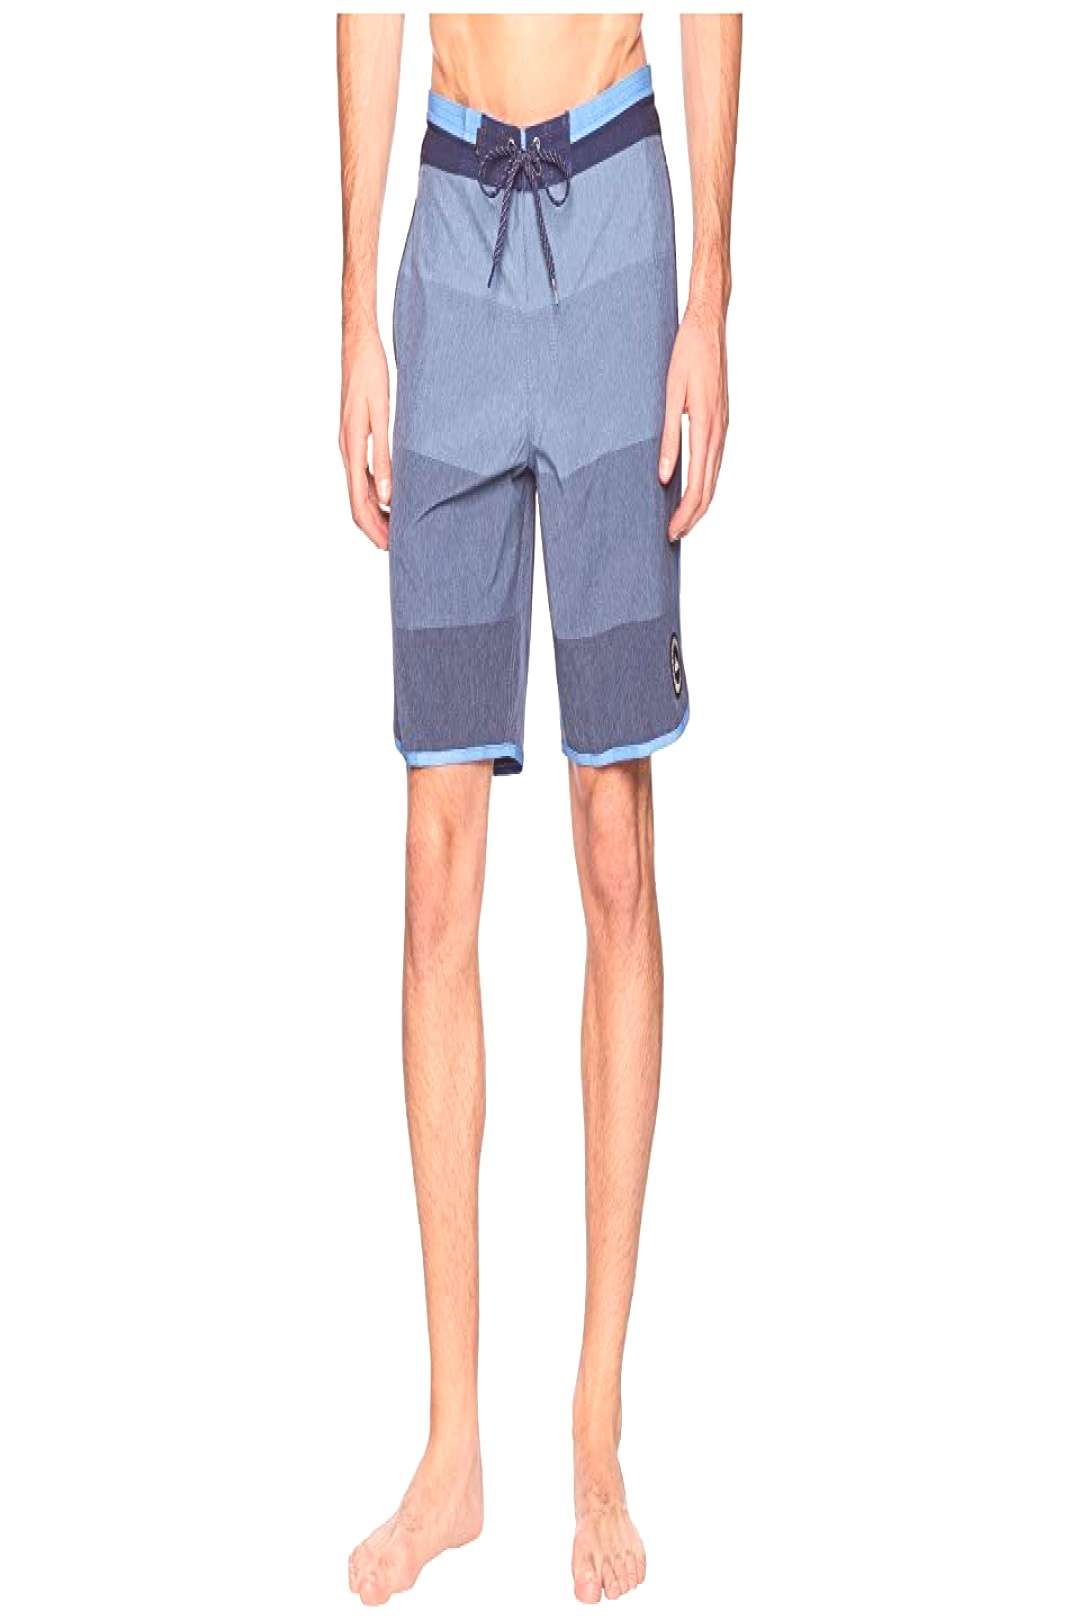 Quiksilver Vista 19 Beachshorts (Medieval Blue) Men's Swimwear. These Quiksilver Vista 19 Beachshor